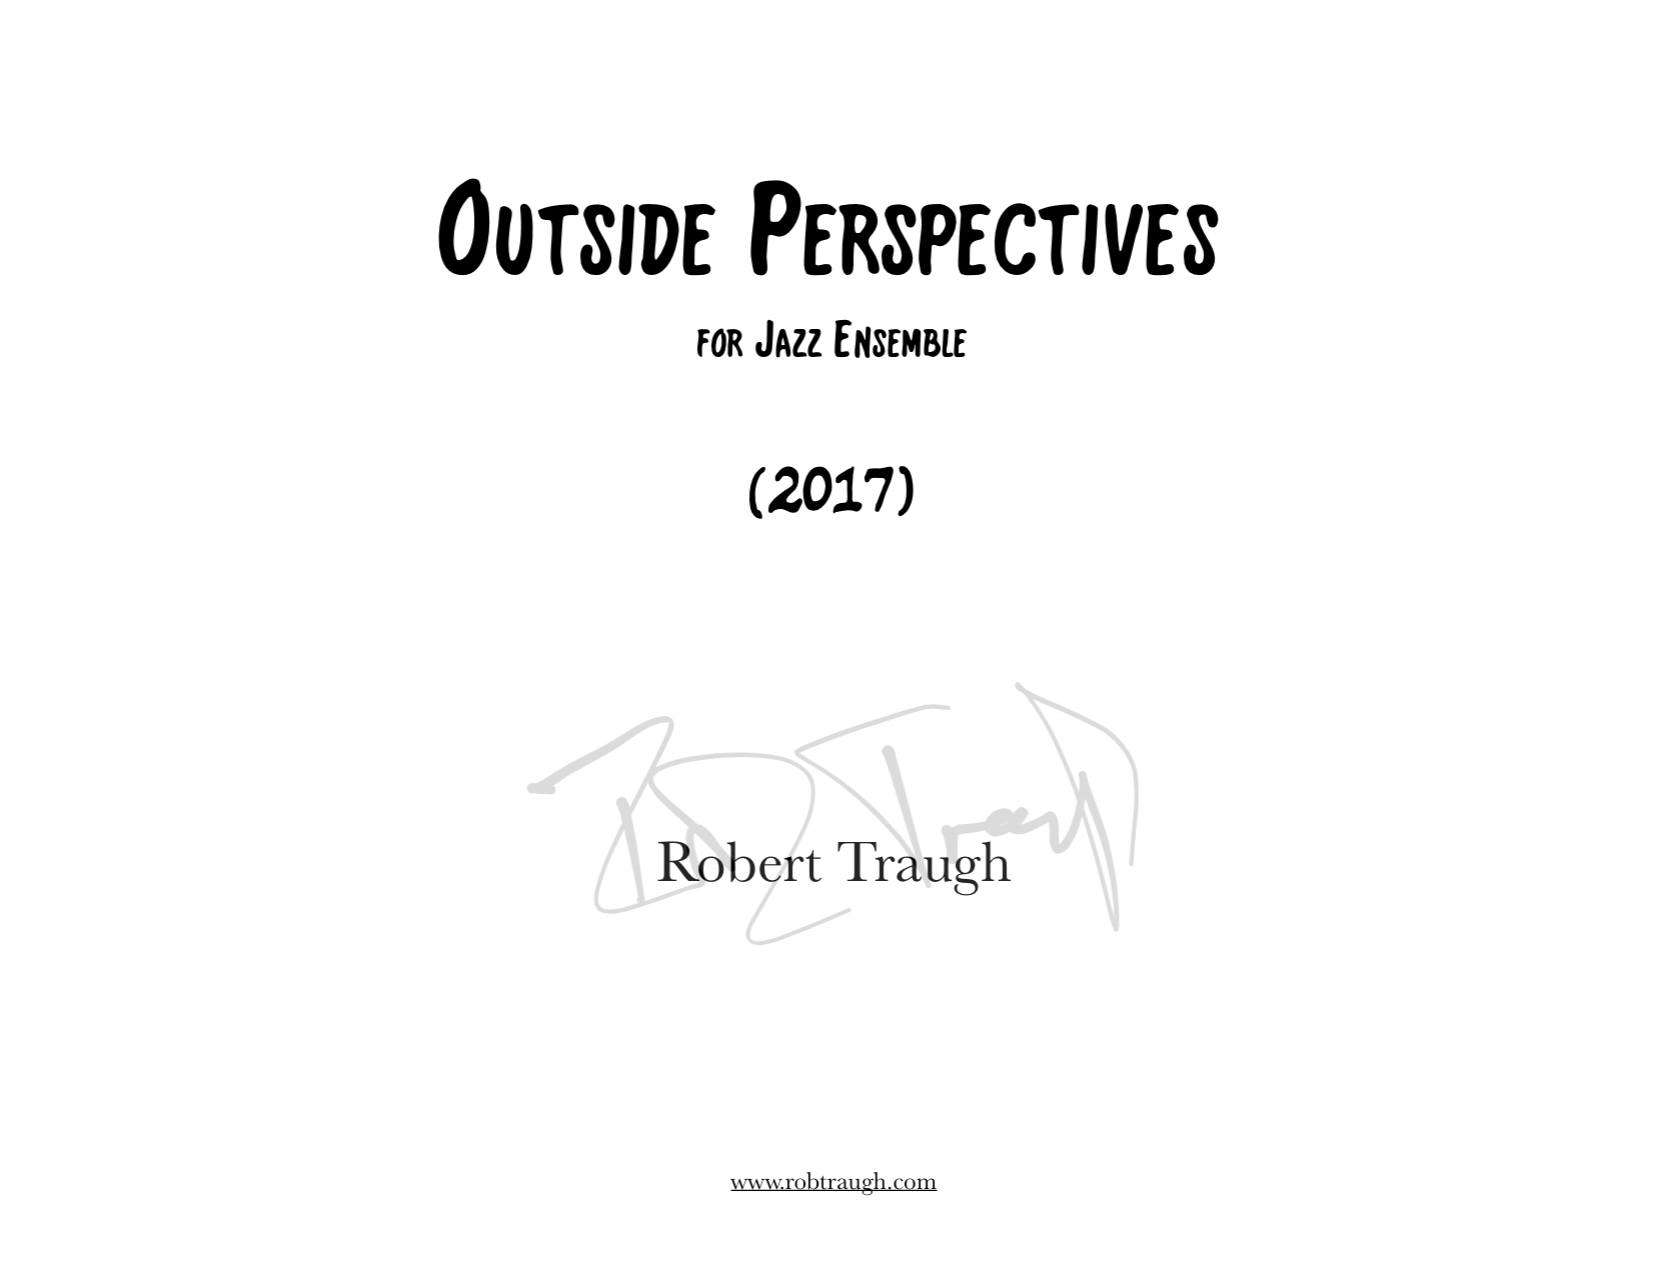 Outside Perspectives by Rob Traugh